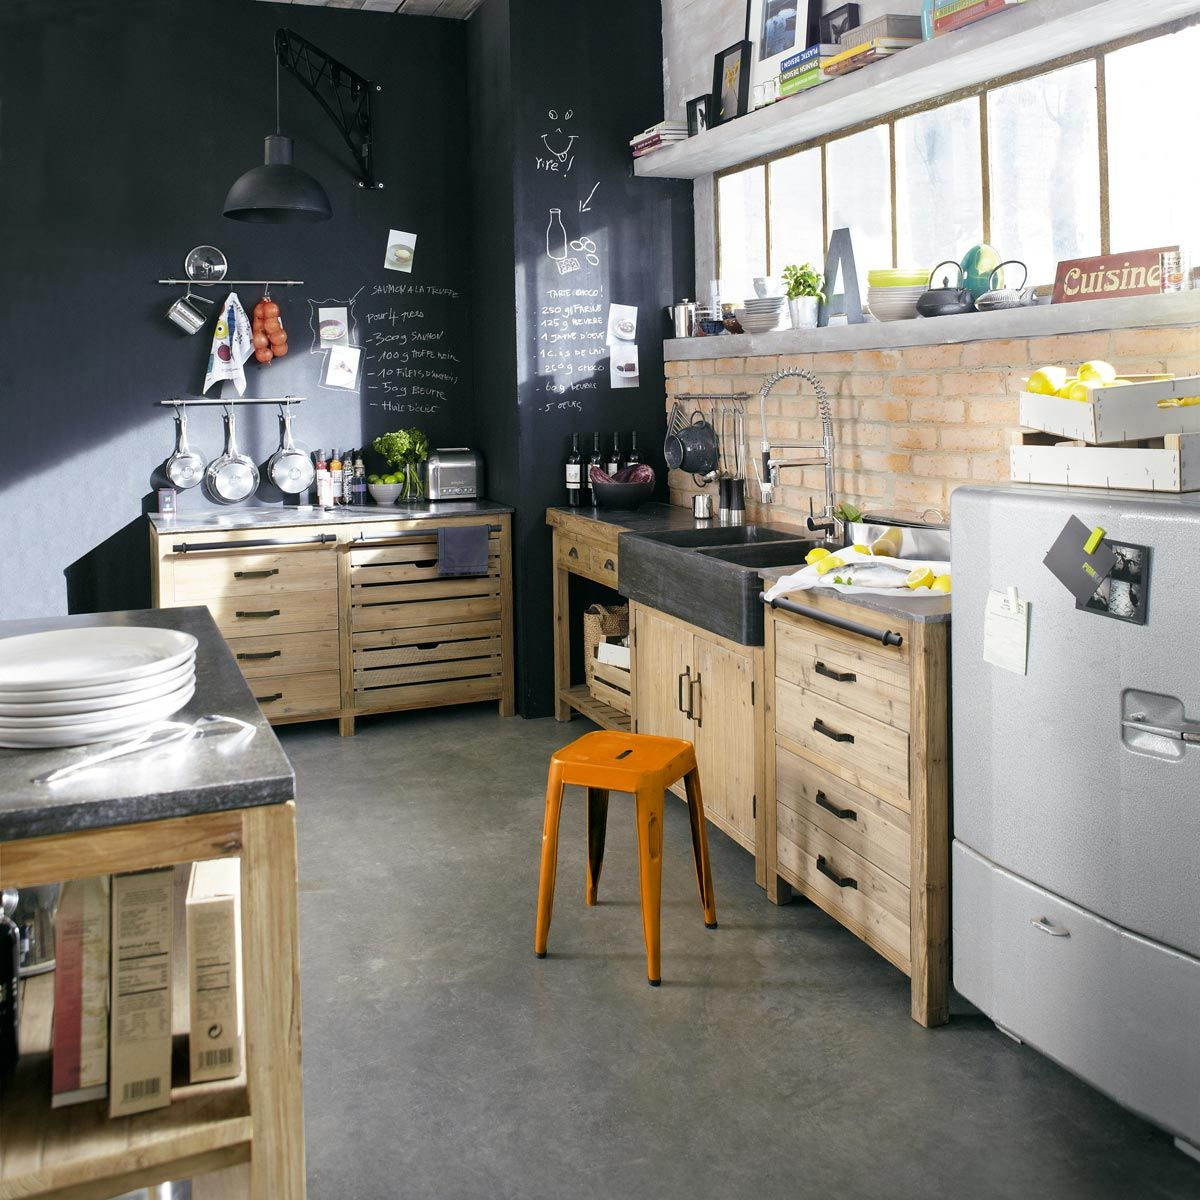 Arredare in stile industriale | Orange! | Pinterest | Cucina ...